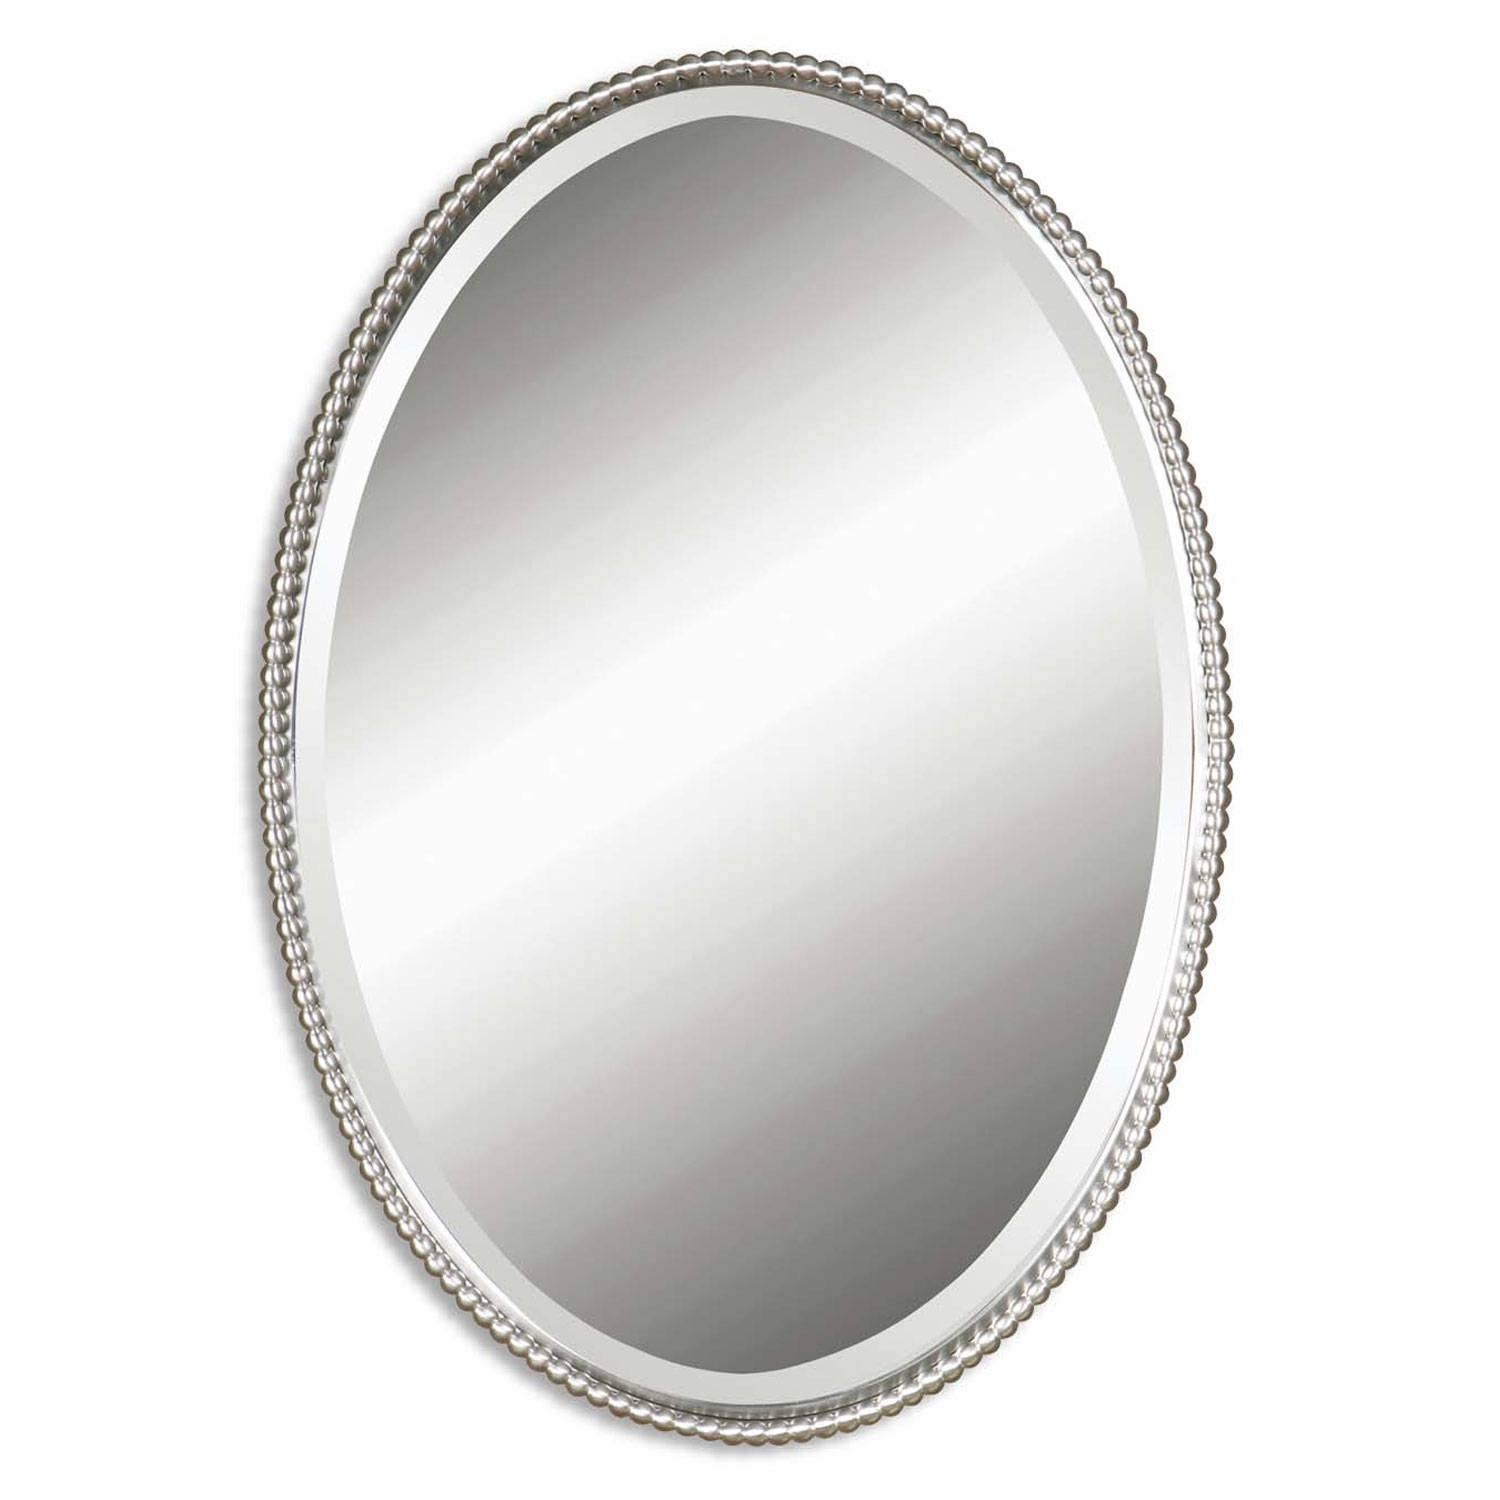 Antique White Oval Wall Mirror - Composing The Idea About The with regard to White Oval Wall Mirrors (Image 1 of 15)